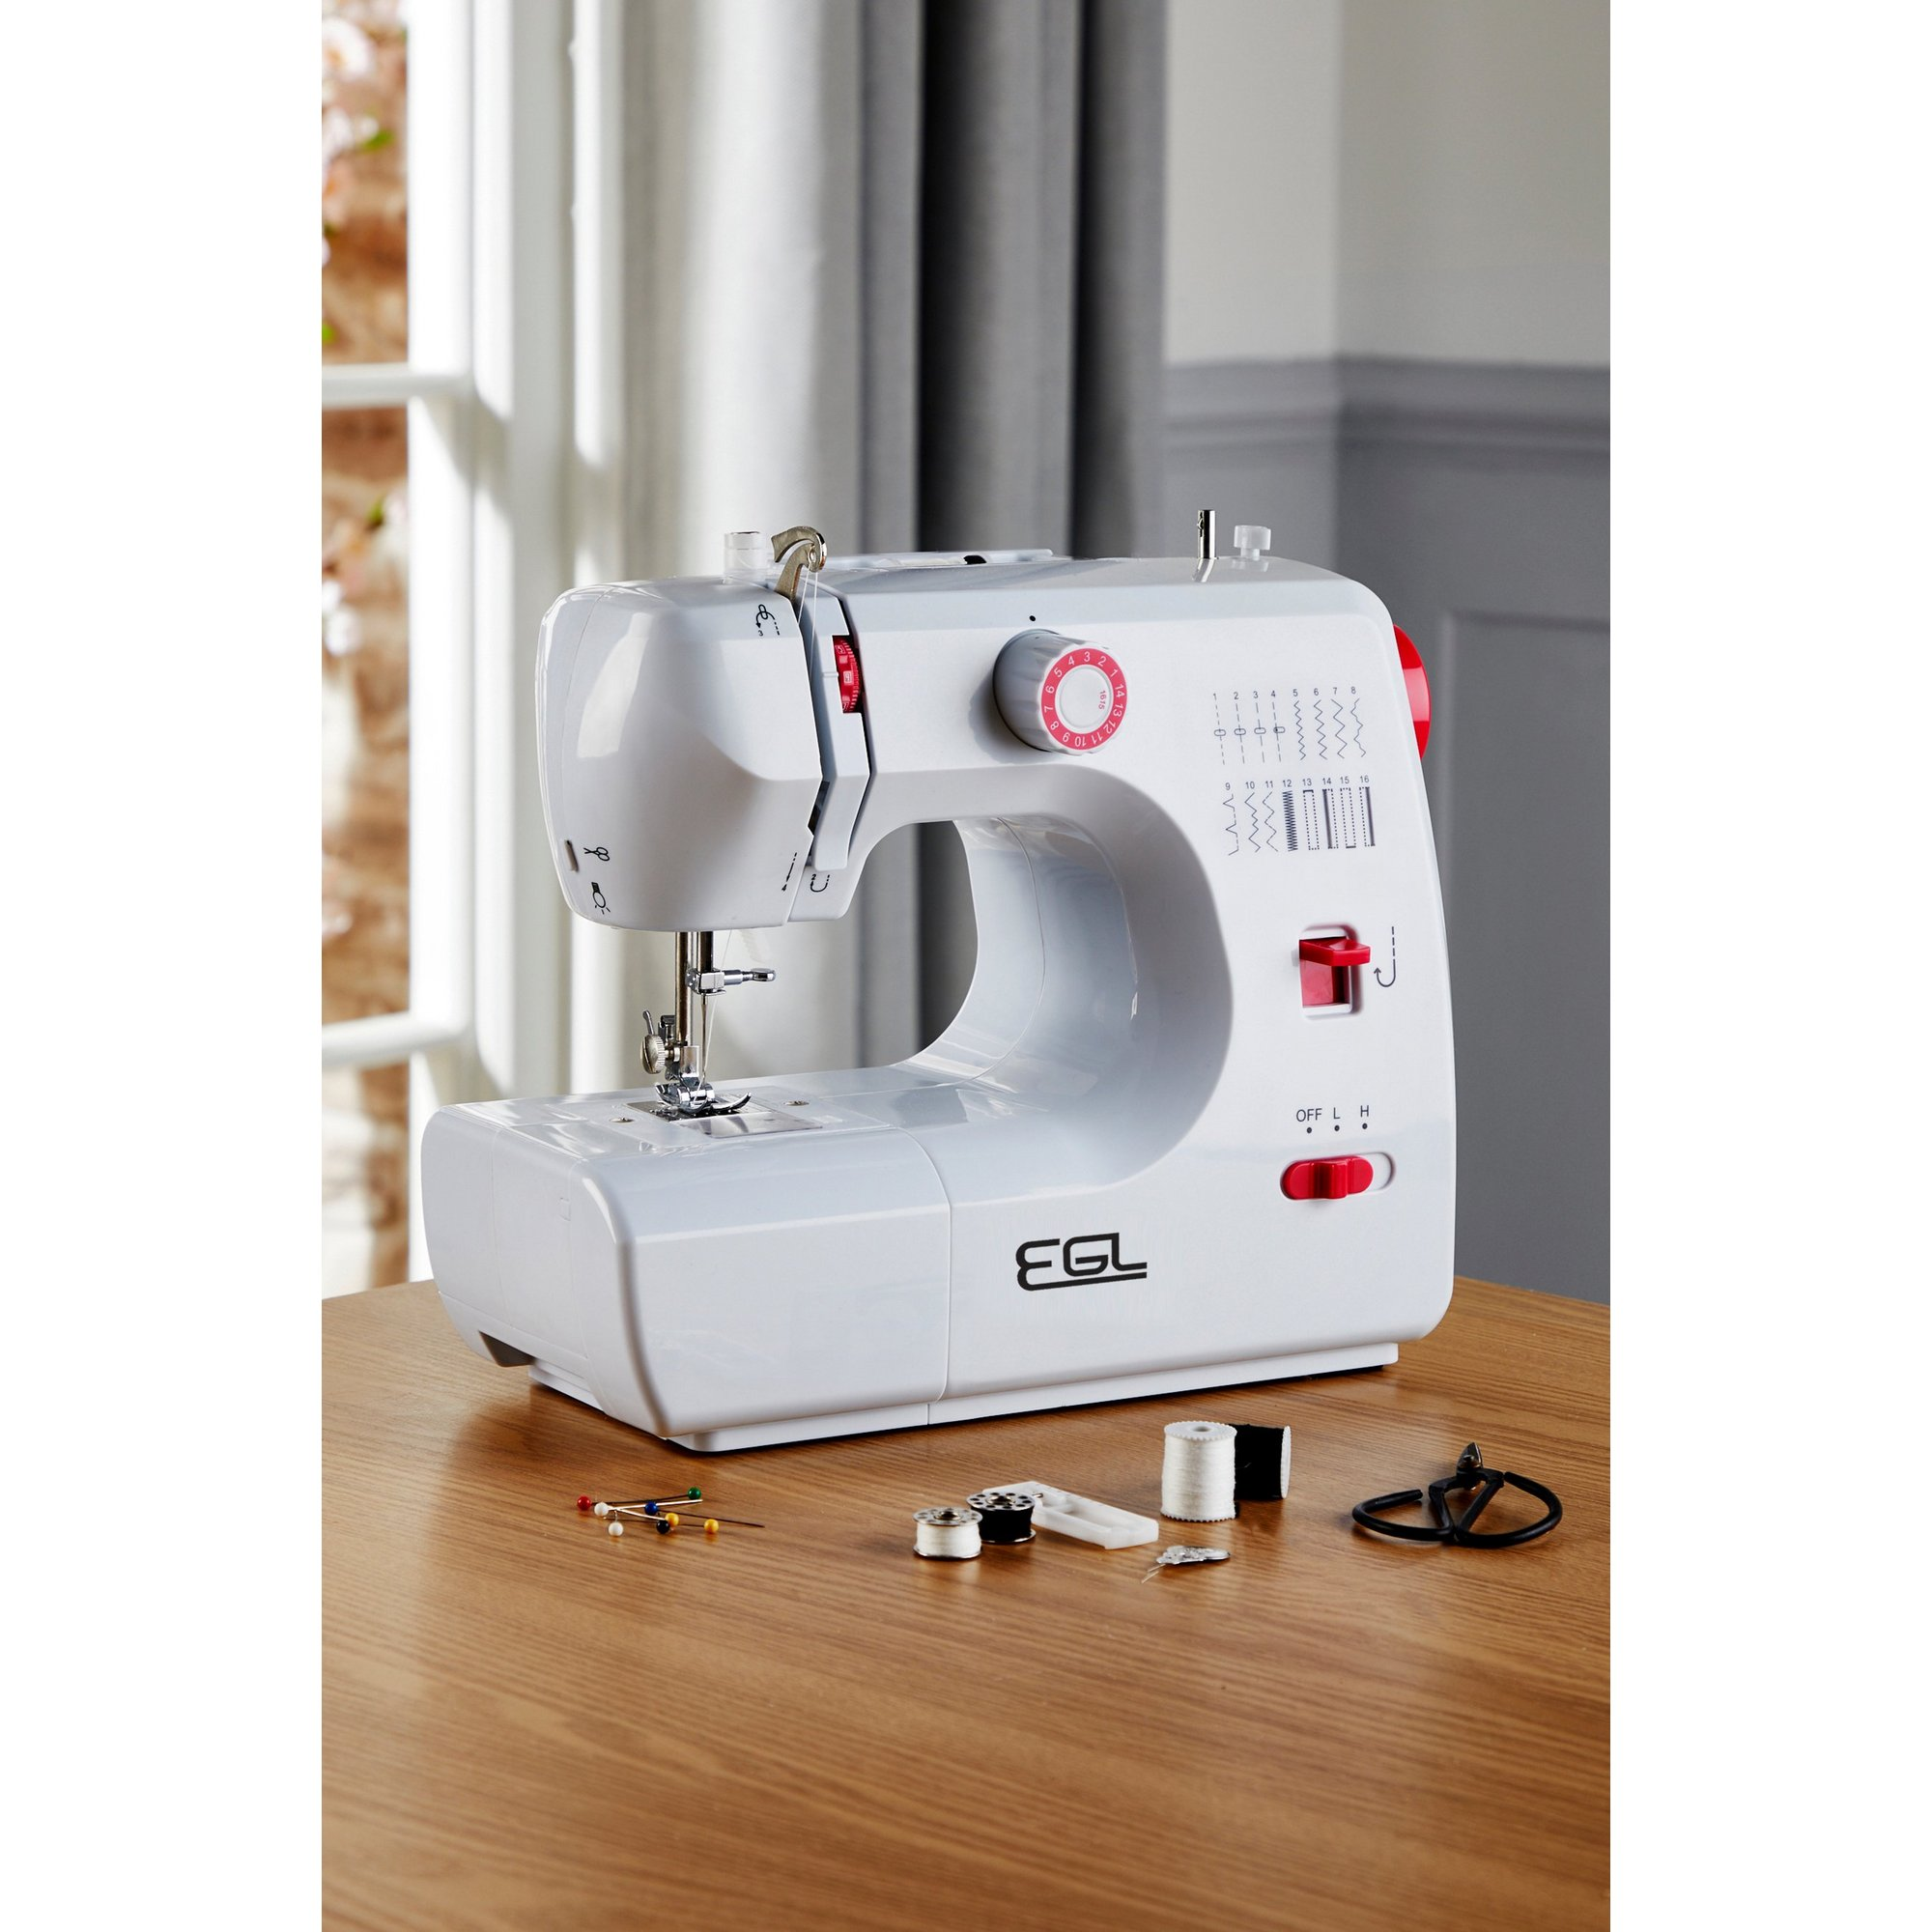 Image of 700 Sewing Machine